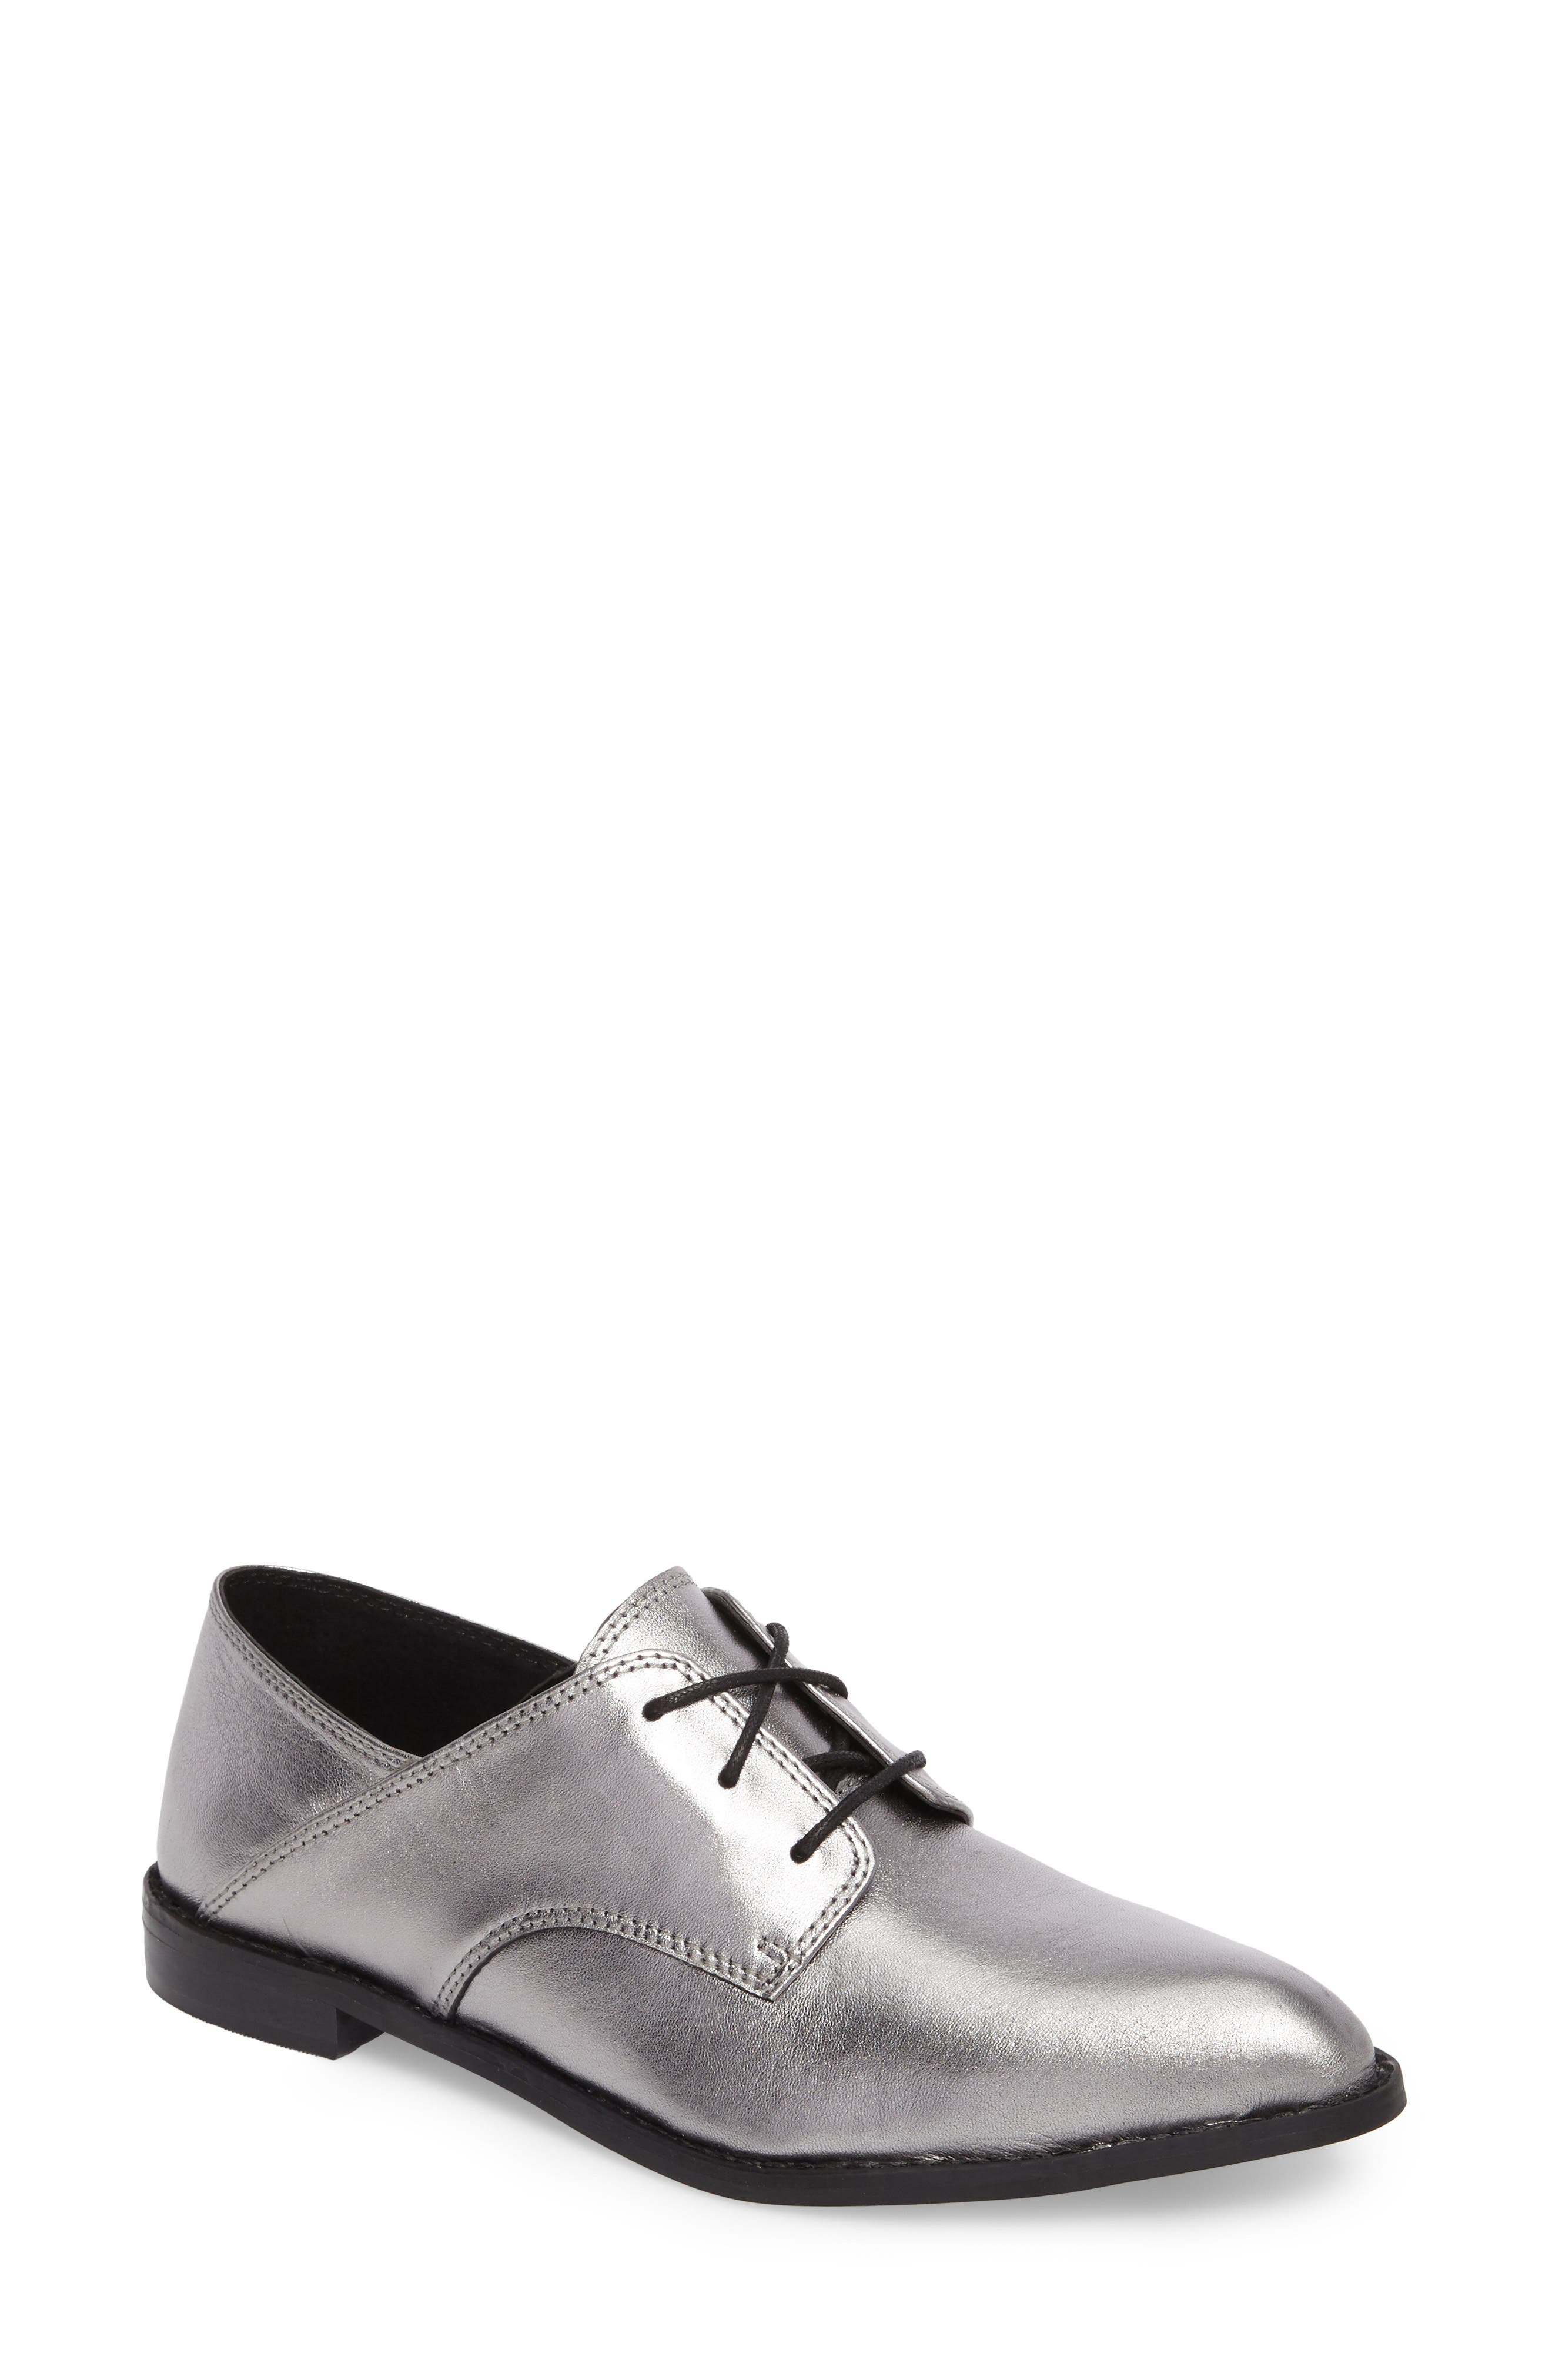 Corbin Oxford,                             Main thumbnail 1, color,                             Pewter Leather